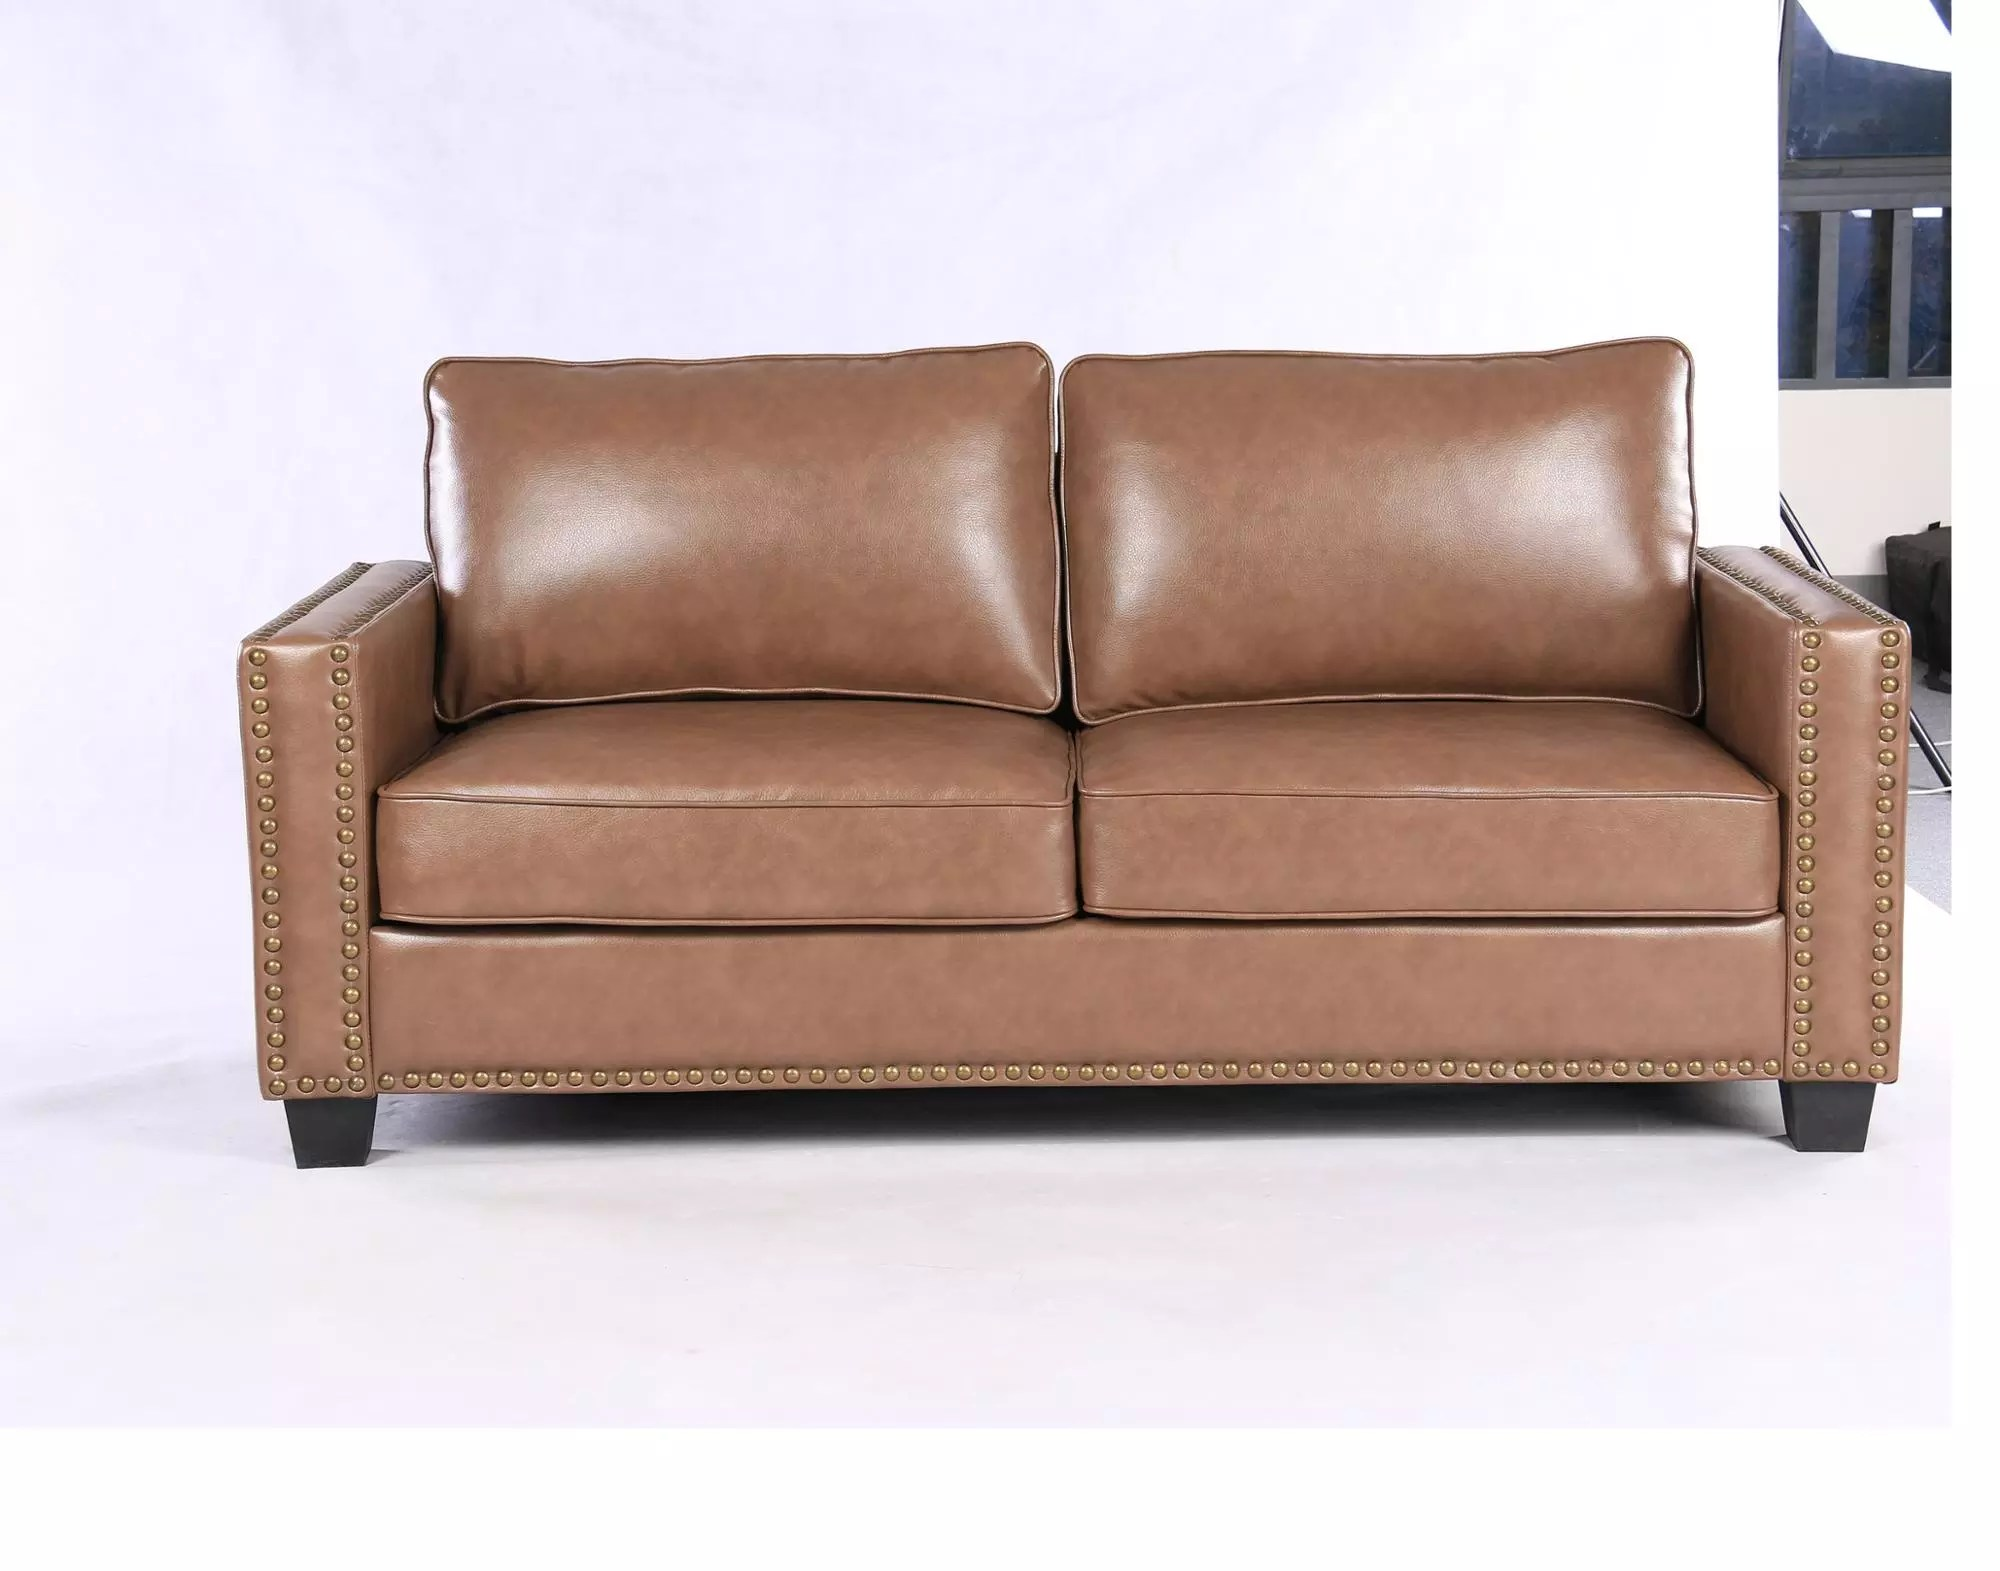 upsable fully kd upholstered sofa air leather settee couch 3 steater sofa with removable back and seat cushion buy leather kd sofa leather and wood